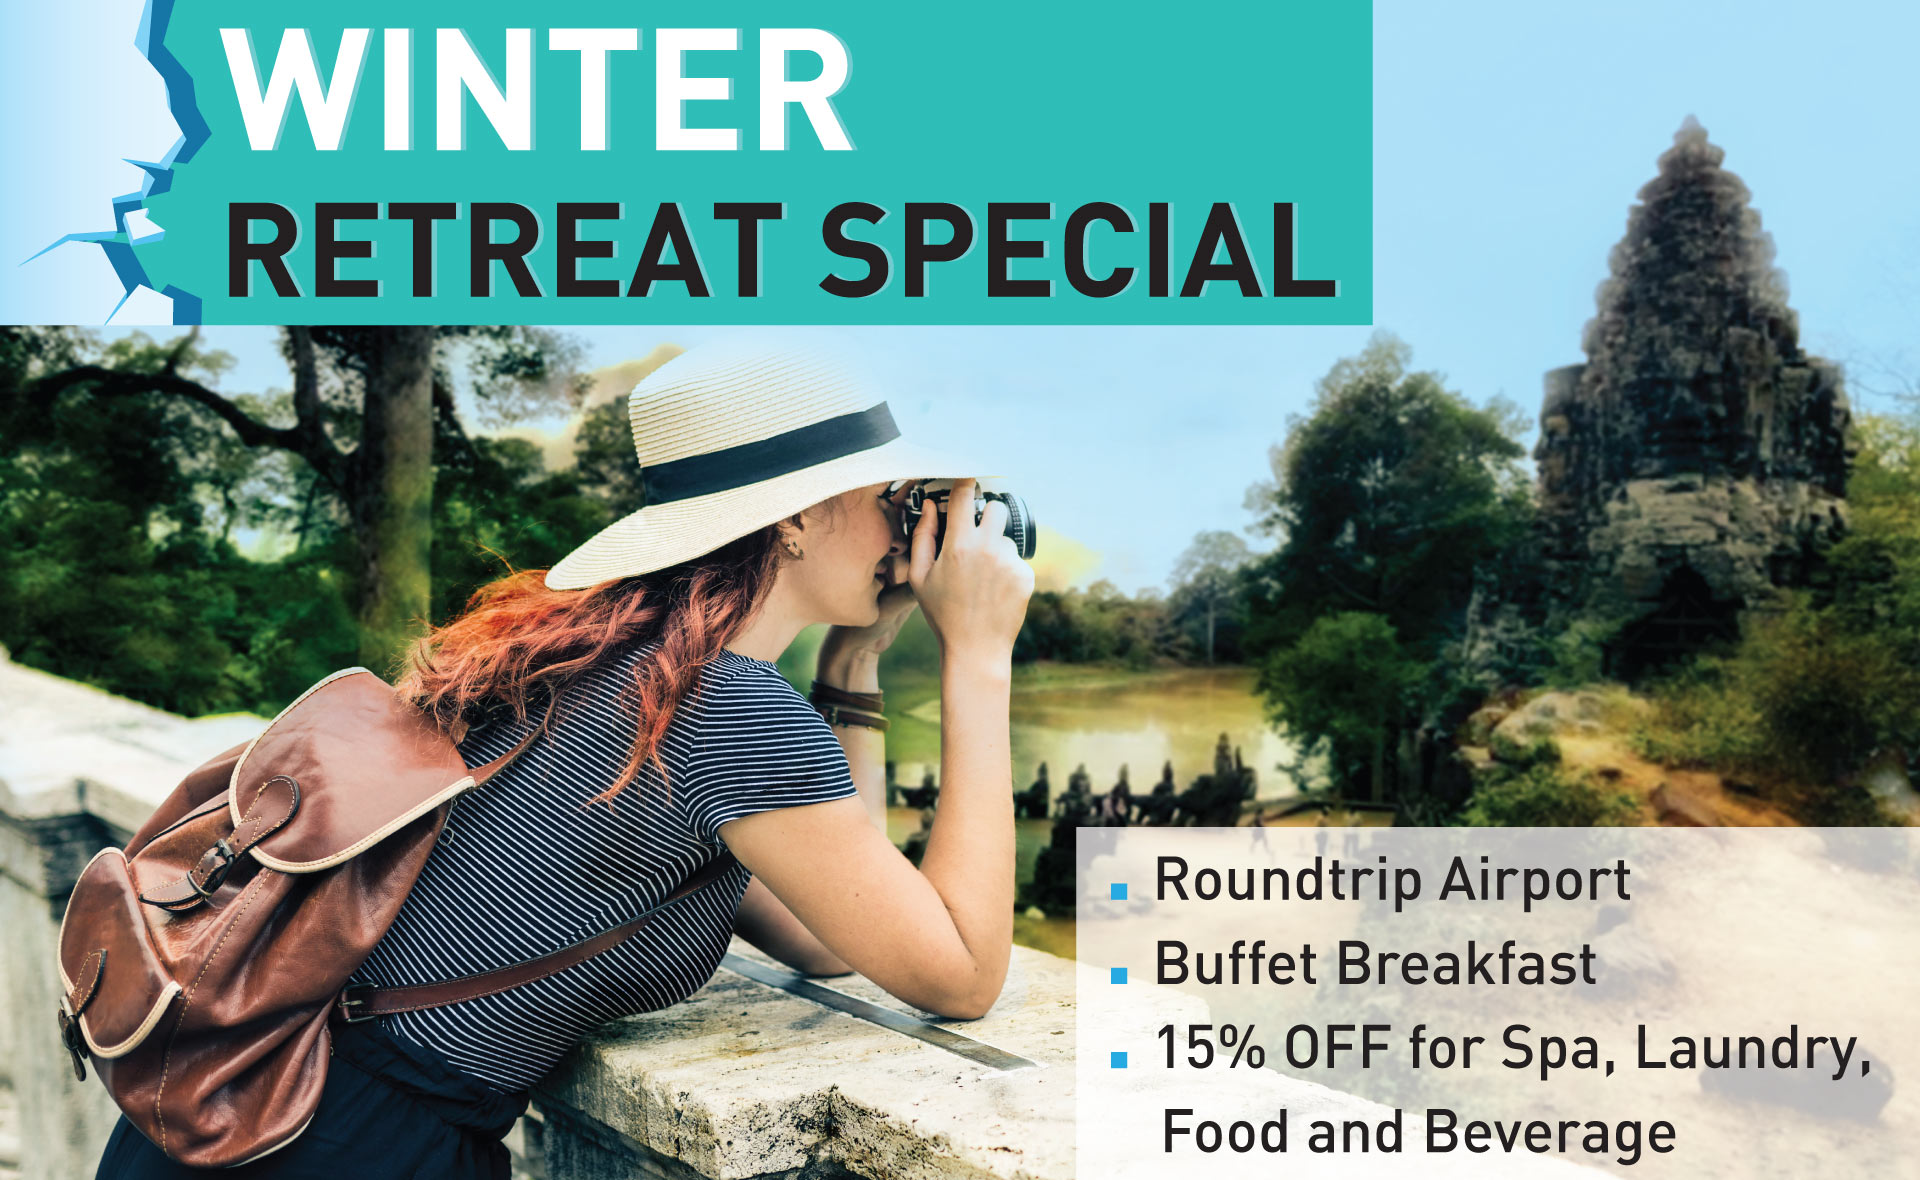 Winter Retreat Special